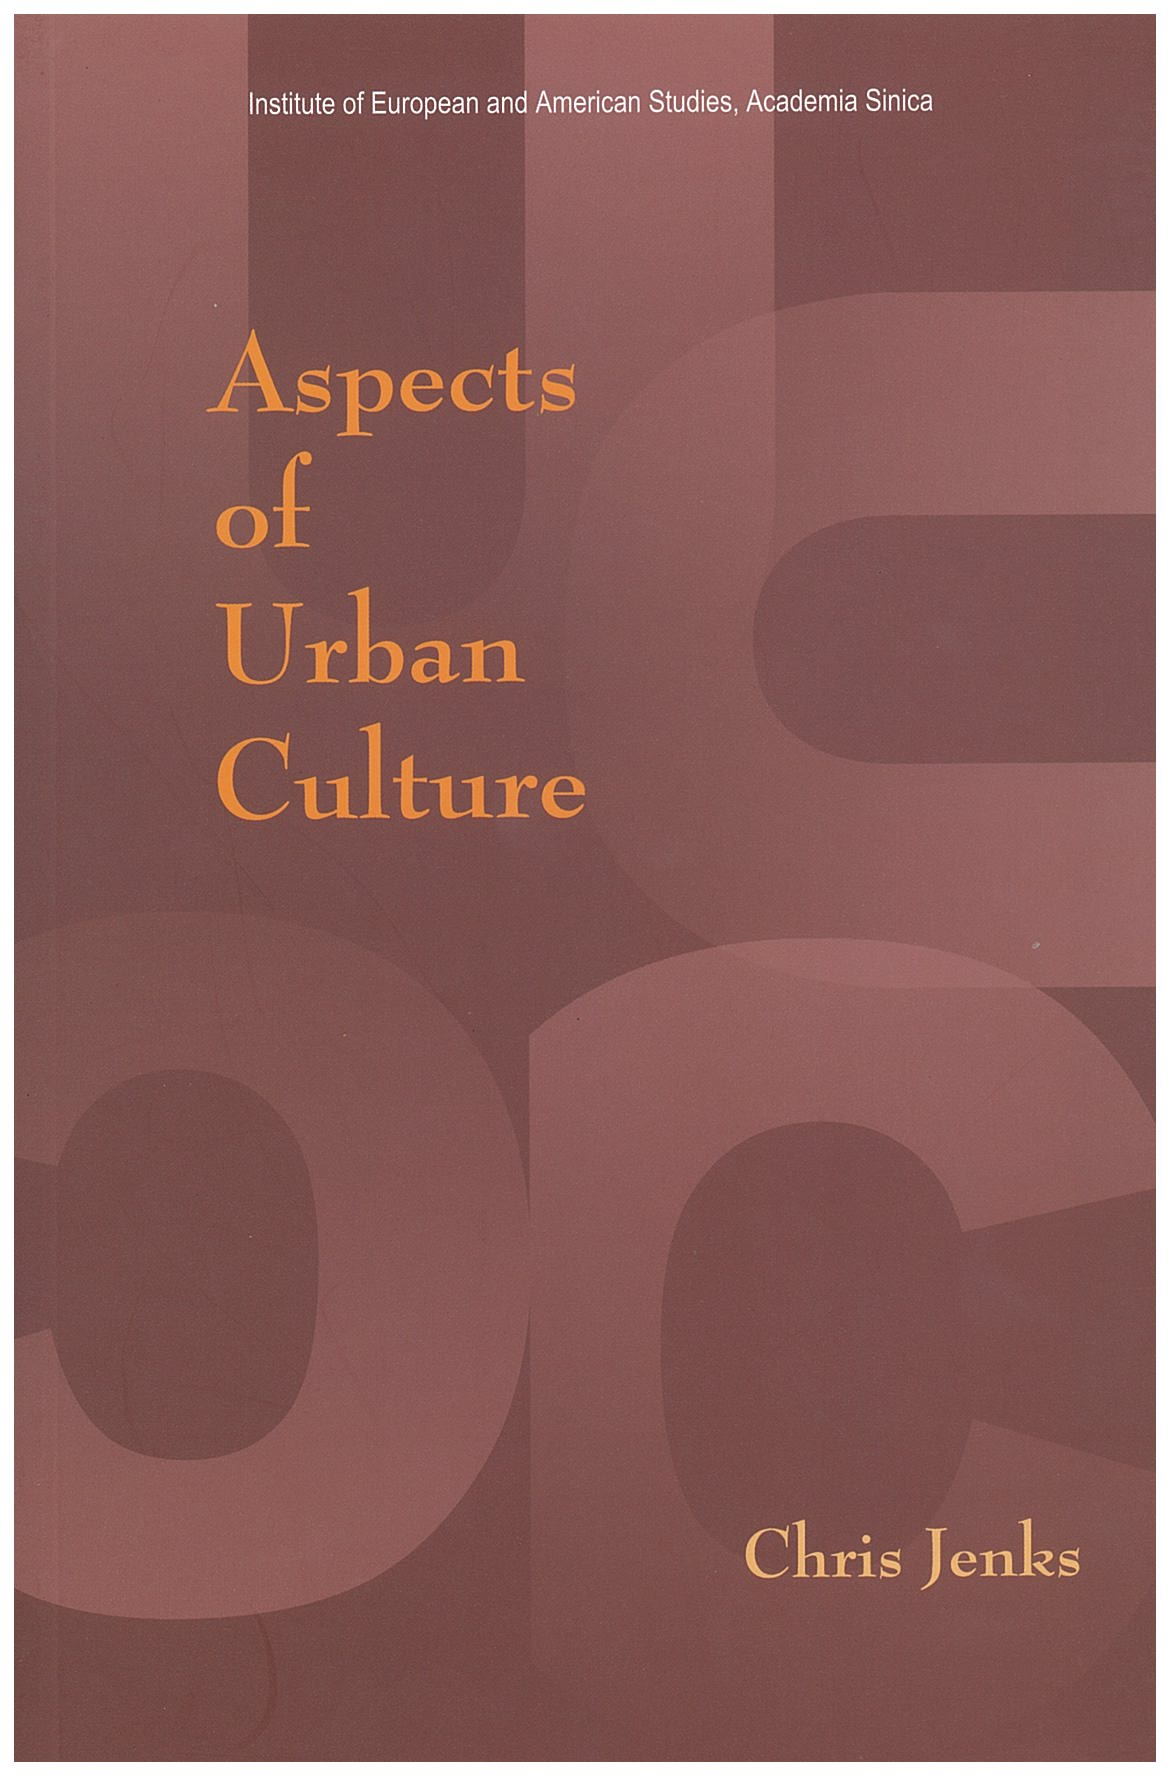 Aspects of Urban Culture